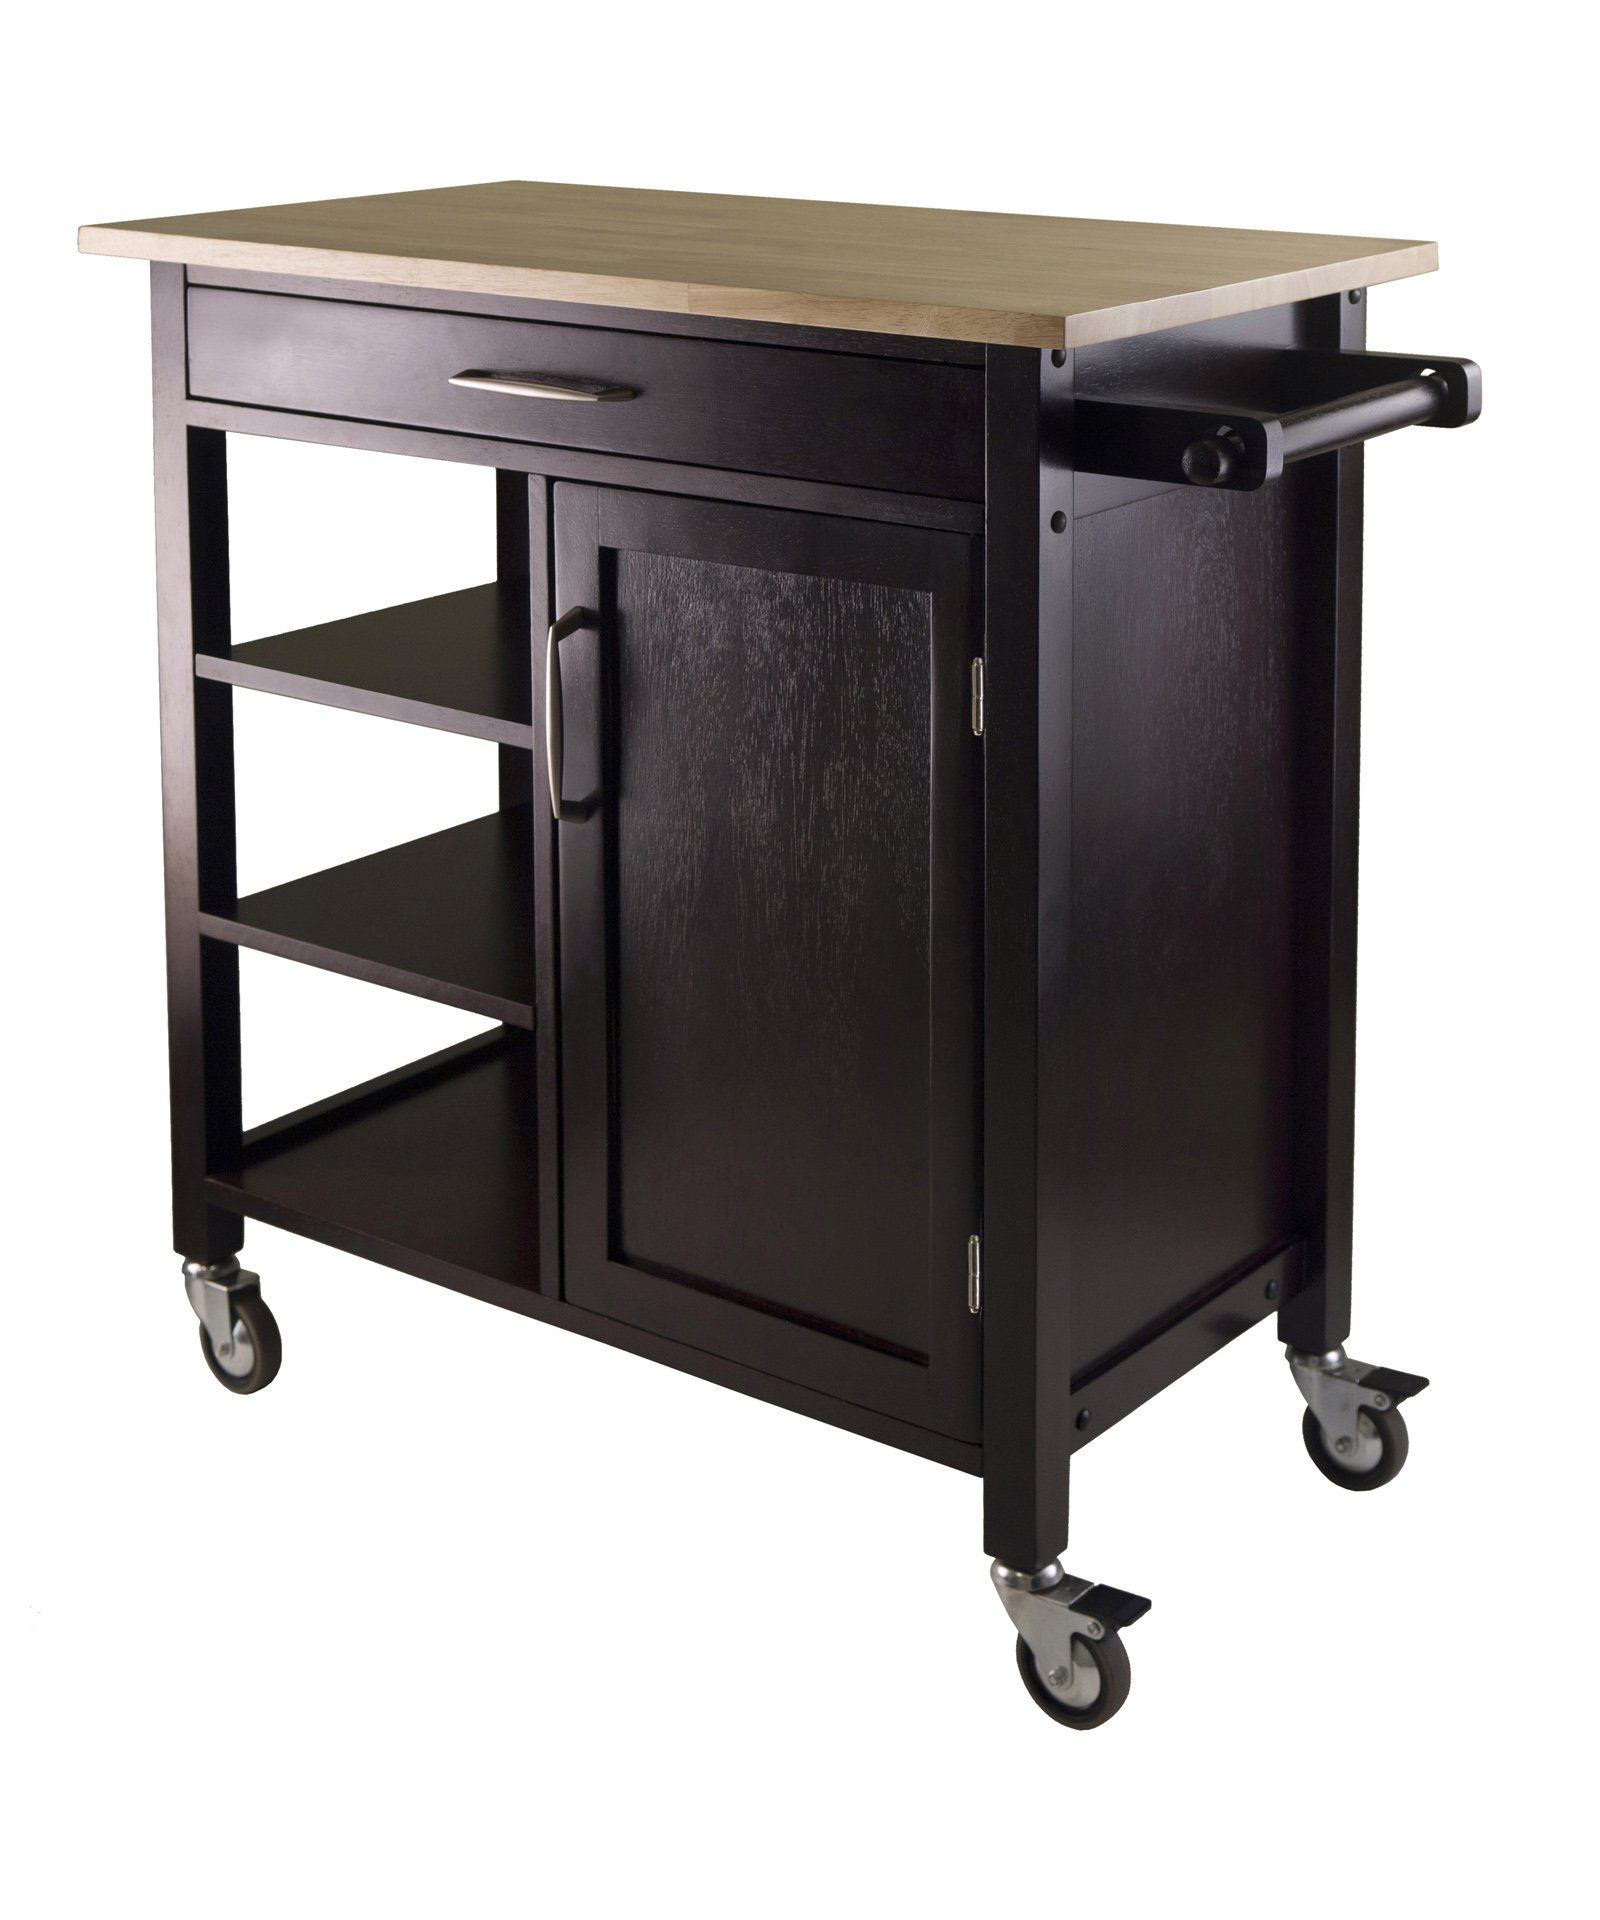 Rolling kitchen cart cabinet island storage trolley counter top wood furniture